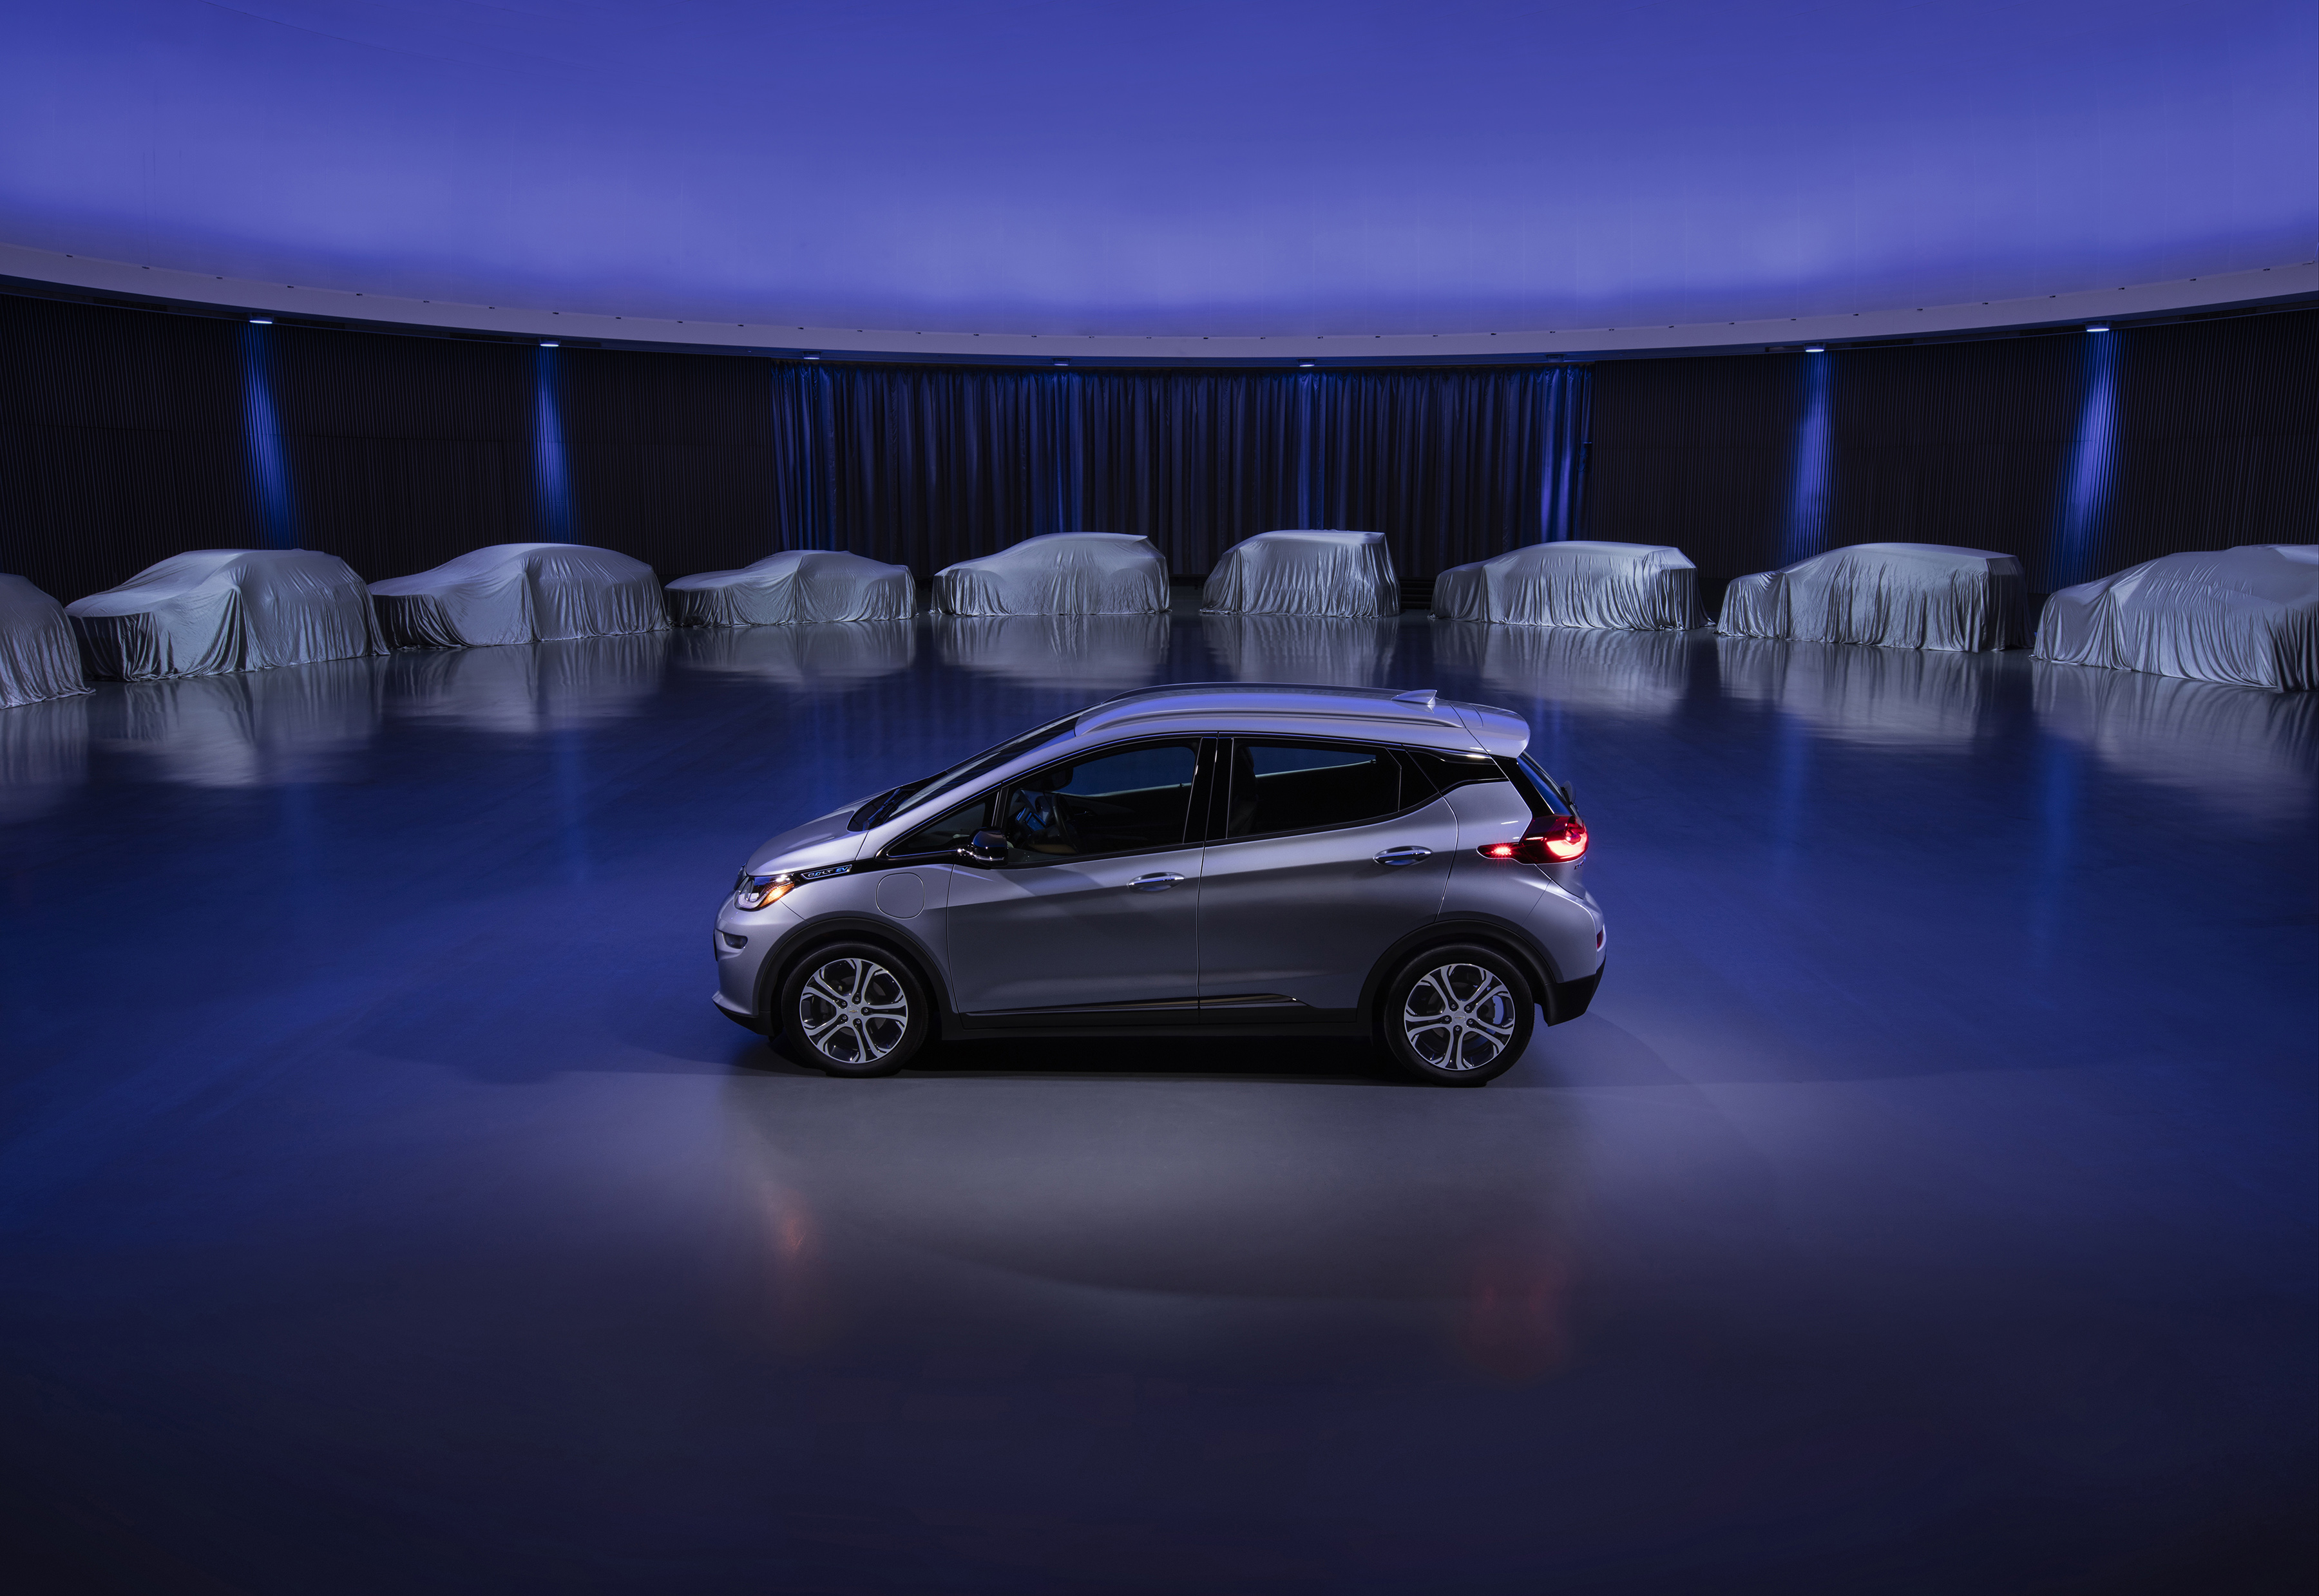 GM Planning At Least 20 Electric Vehicles By 2023